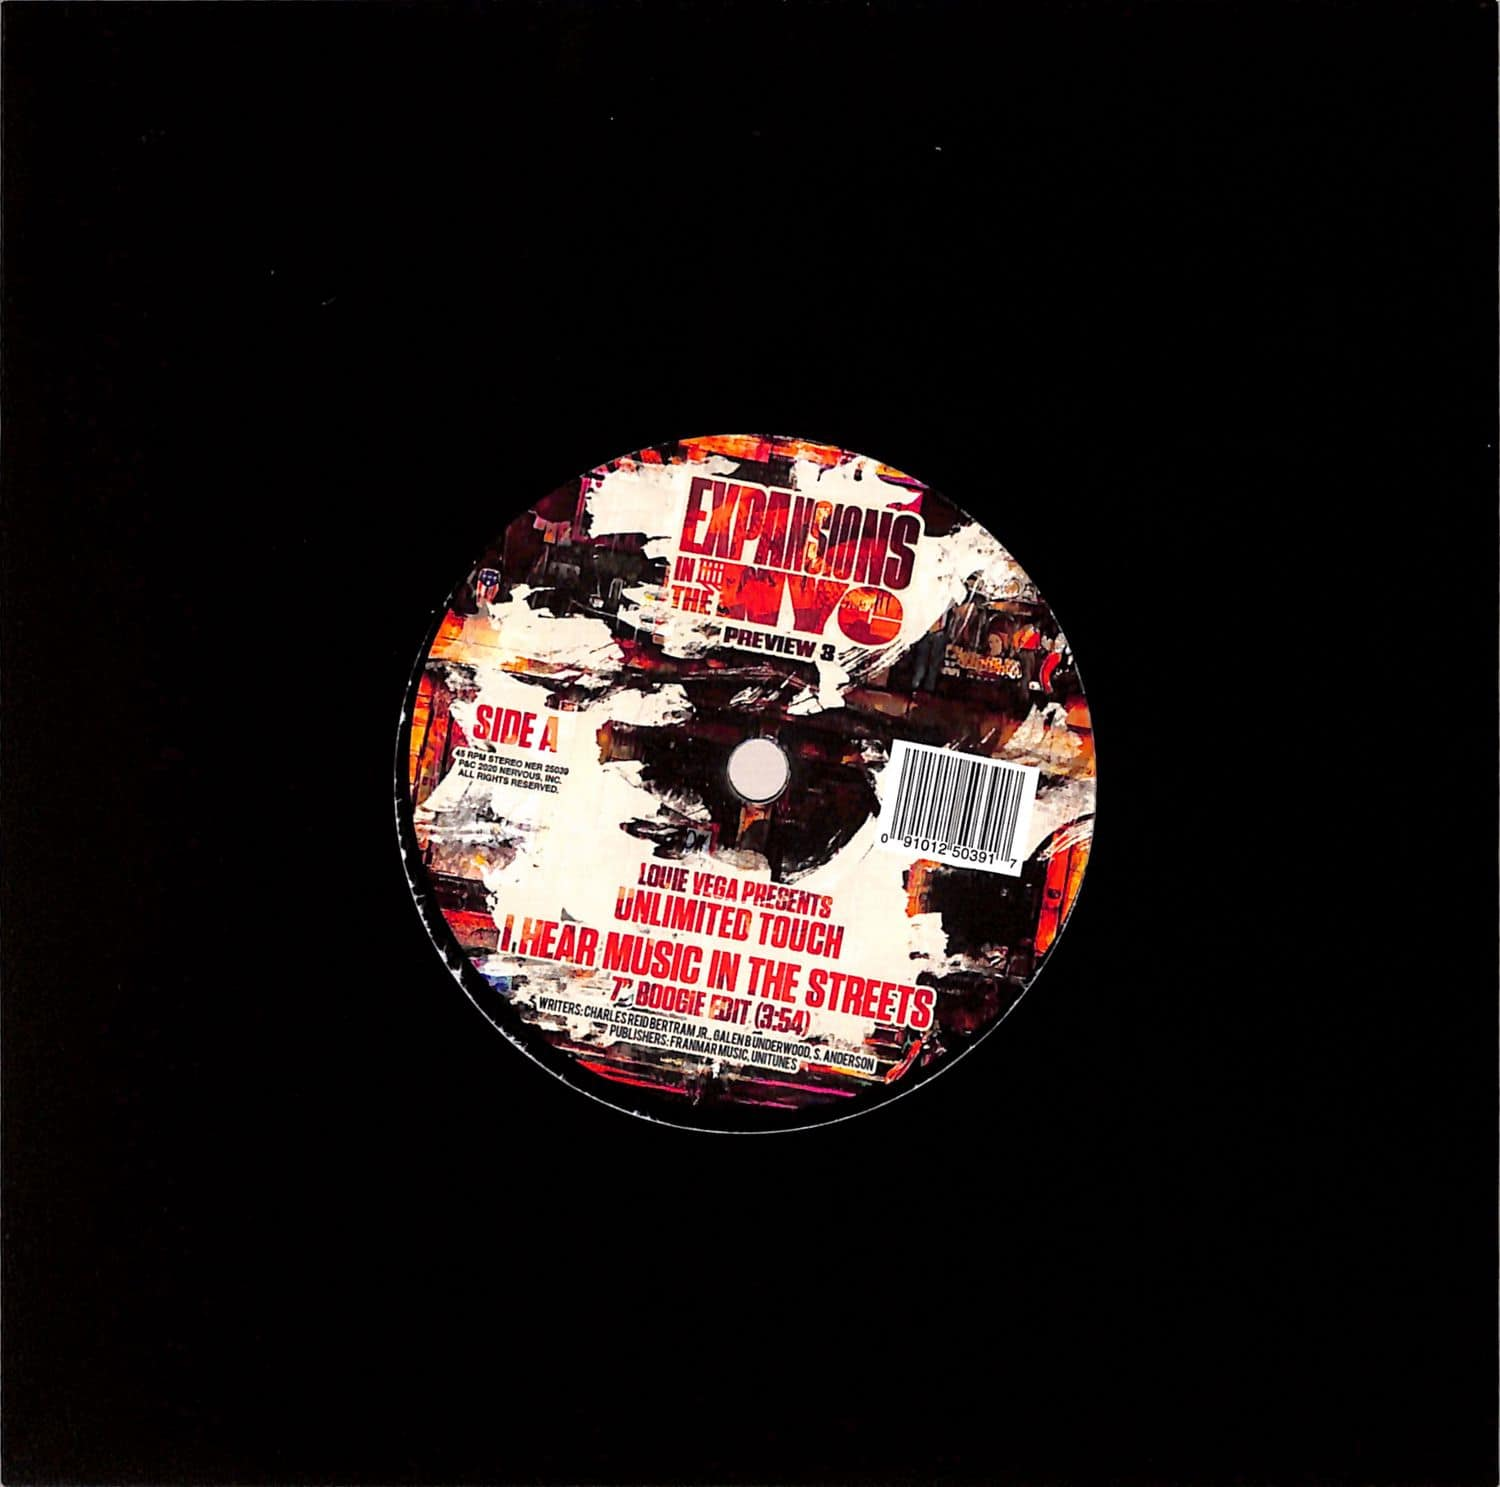 Louie Vega pres. Unlimited Touch - I HEAR MUSIC IN THE STREETS